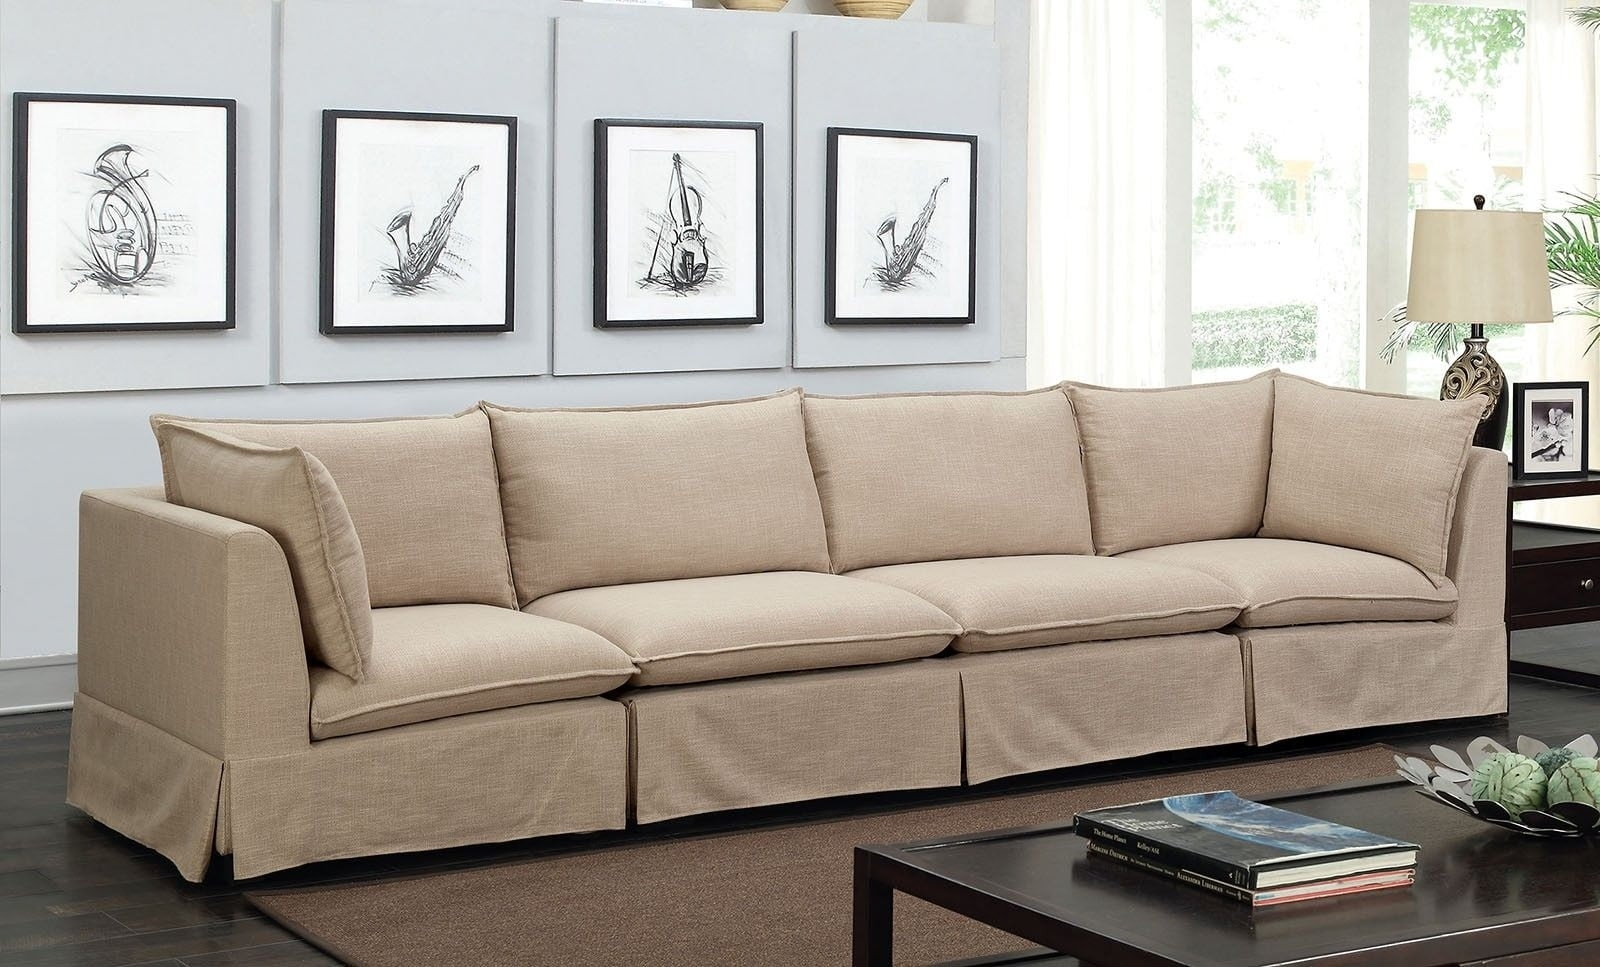 Joelle 3 Piece Beige Sectional From Furniture Of America | Coleman Throughout Adeline 3 Piece Sectionals (Photo 12 of 25)